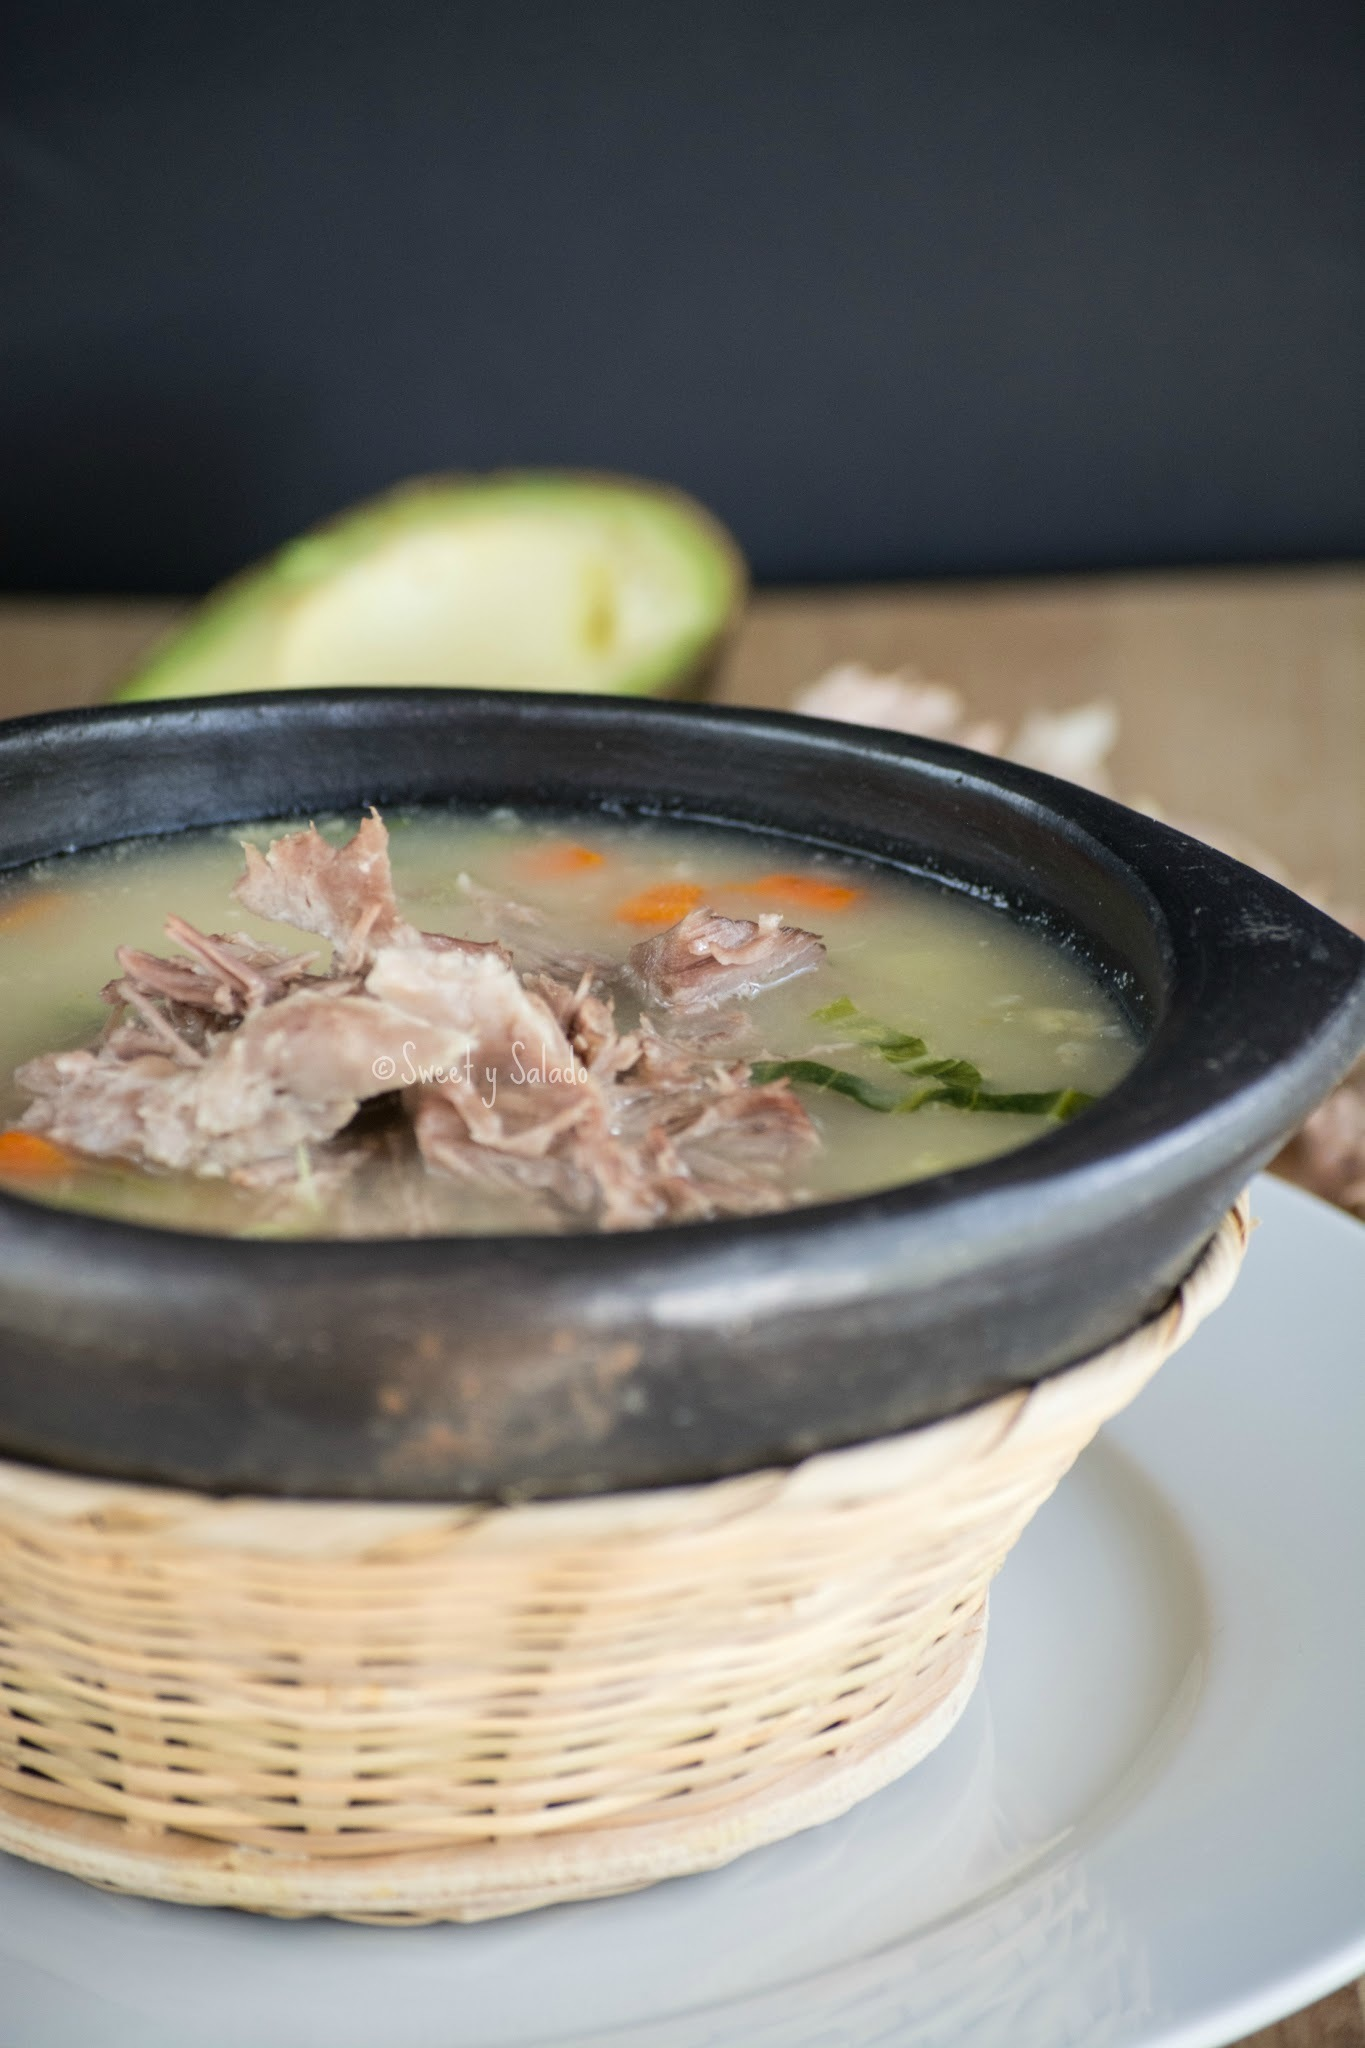 Colombian Bulgur Wheat & Pork Spine Soup (Cuchuco de Trigo Con Espinazo)